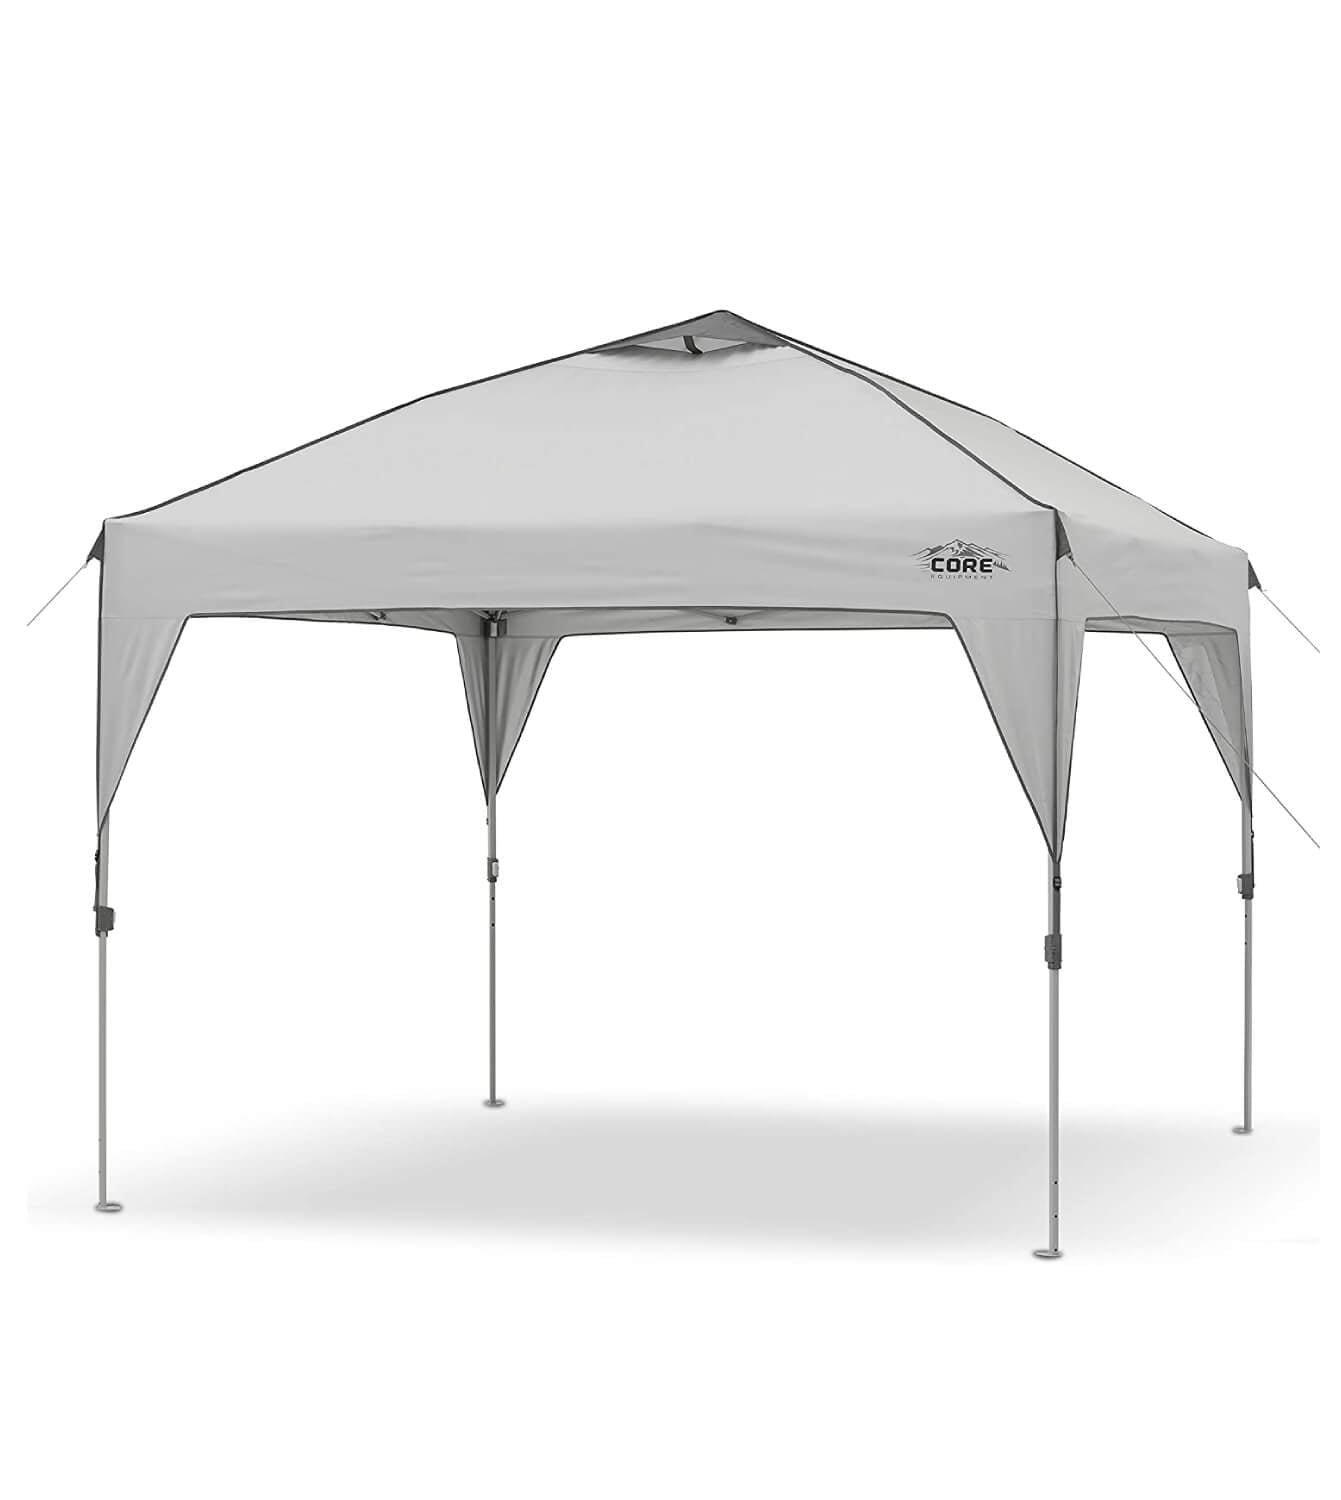 CORE 10′ x 10′ Instant Shelter Pop-Up Canopy Tent